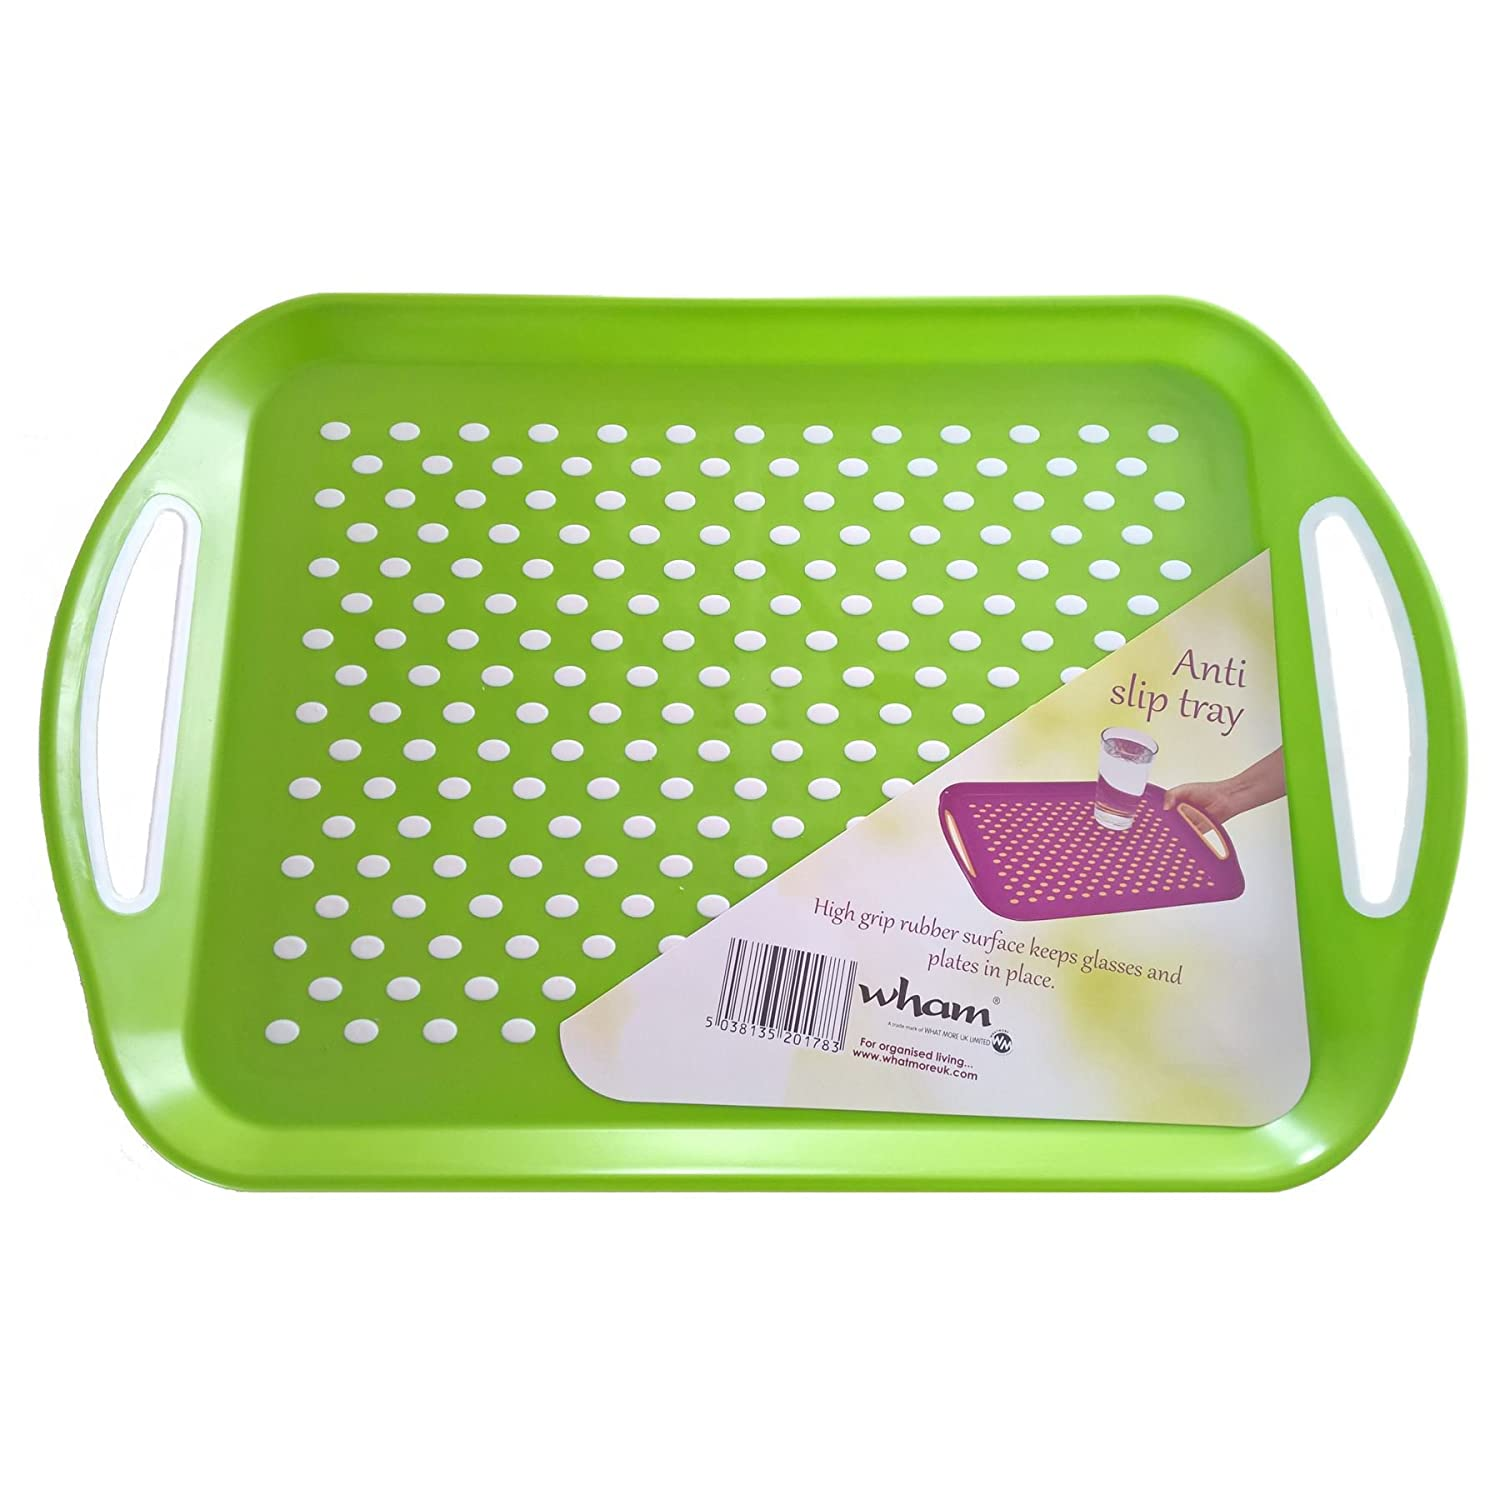 Amazon.com Anti Slip Plastic Serving Tray High Grip Rubber Surface Non-slip Padded Base - 4 colours red/blue/green/purple by Wham Paintings  sc 1 st  Amazon.com & Amazon.com: Anti Slip Plastic Serving Tray High Grip Rubber Surface ...